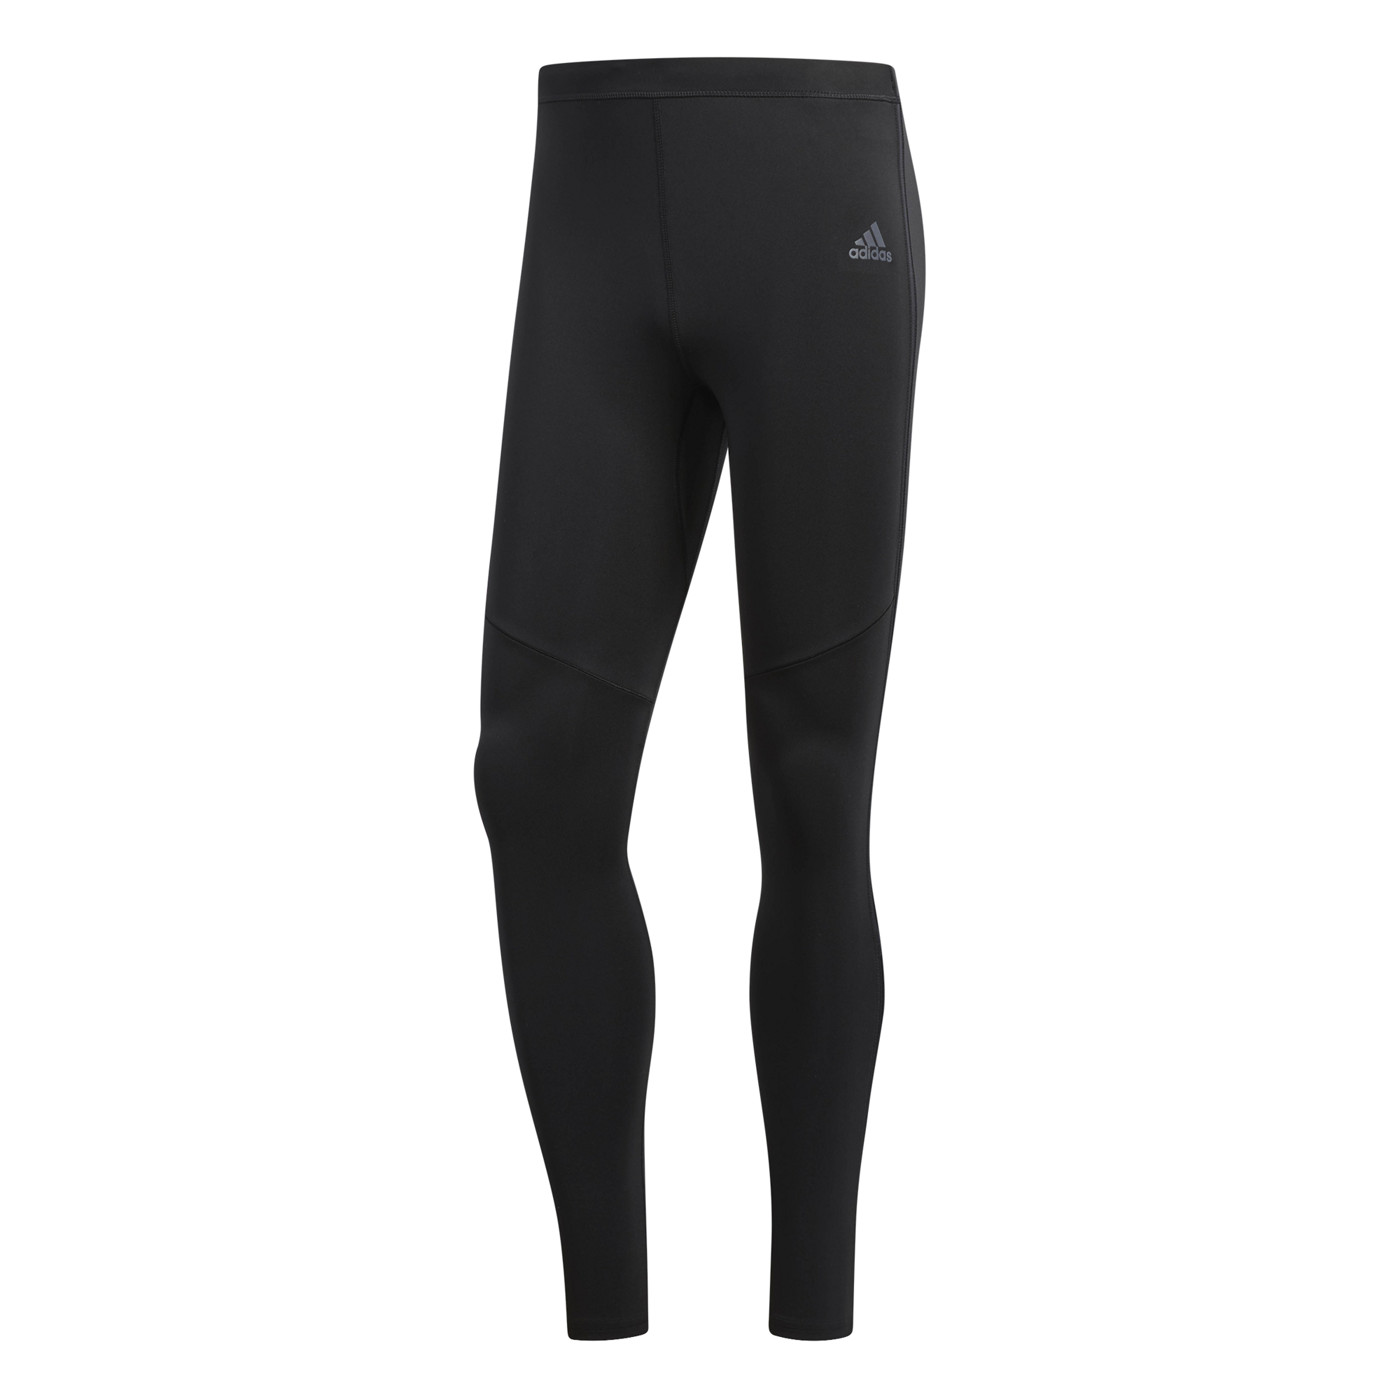 ADIDAS RS LNG TIGHT M - Herren